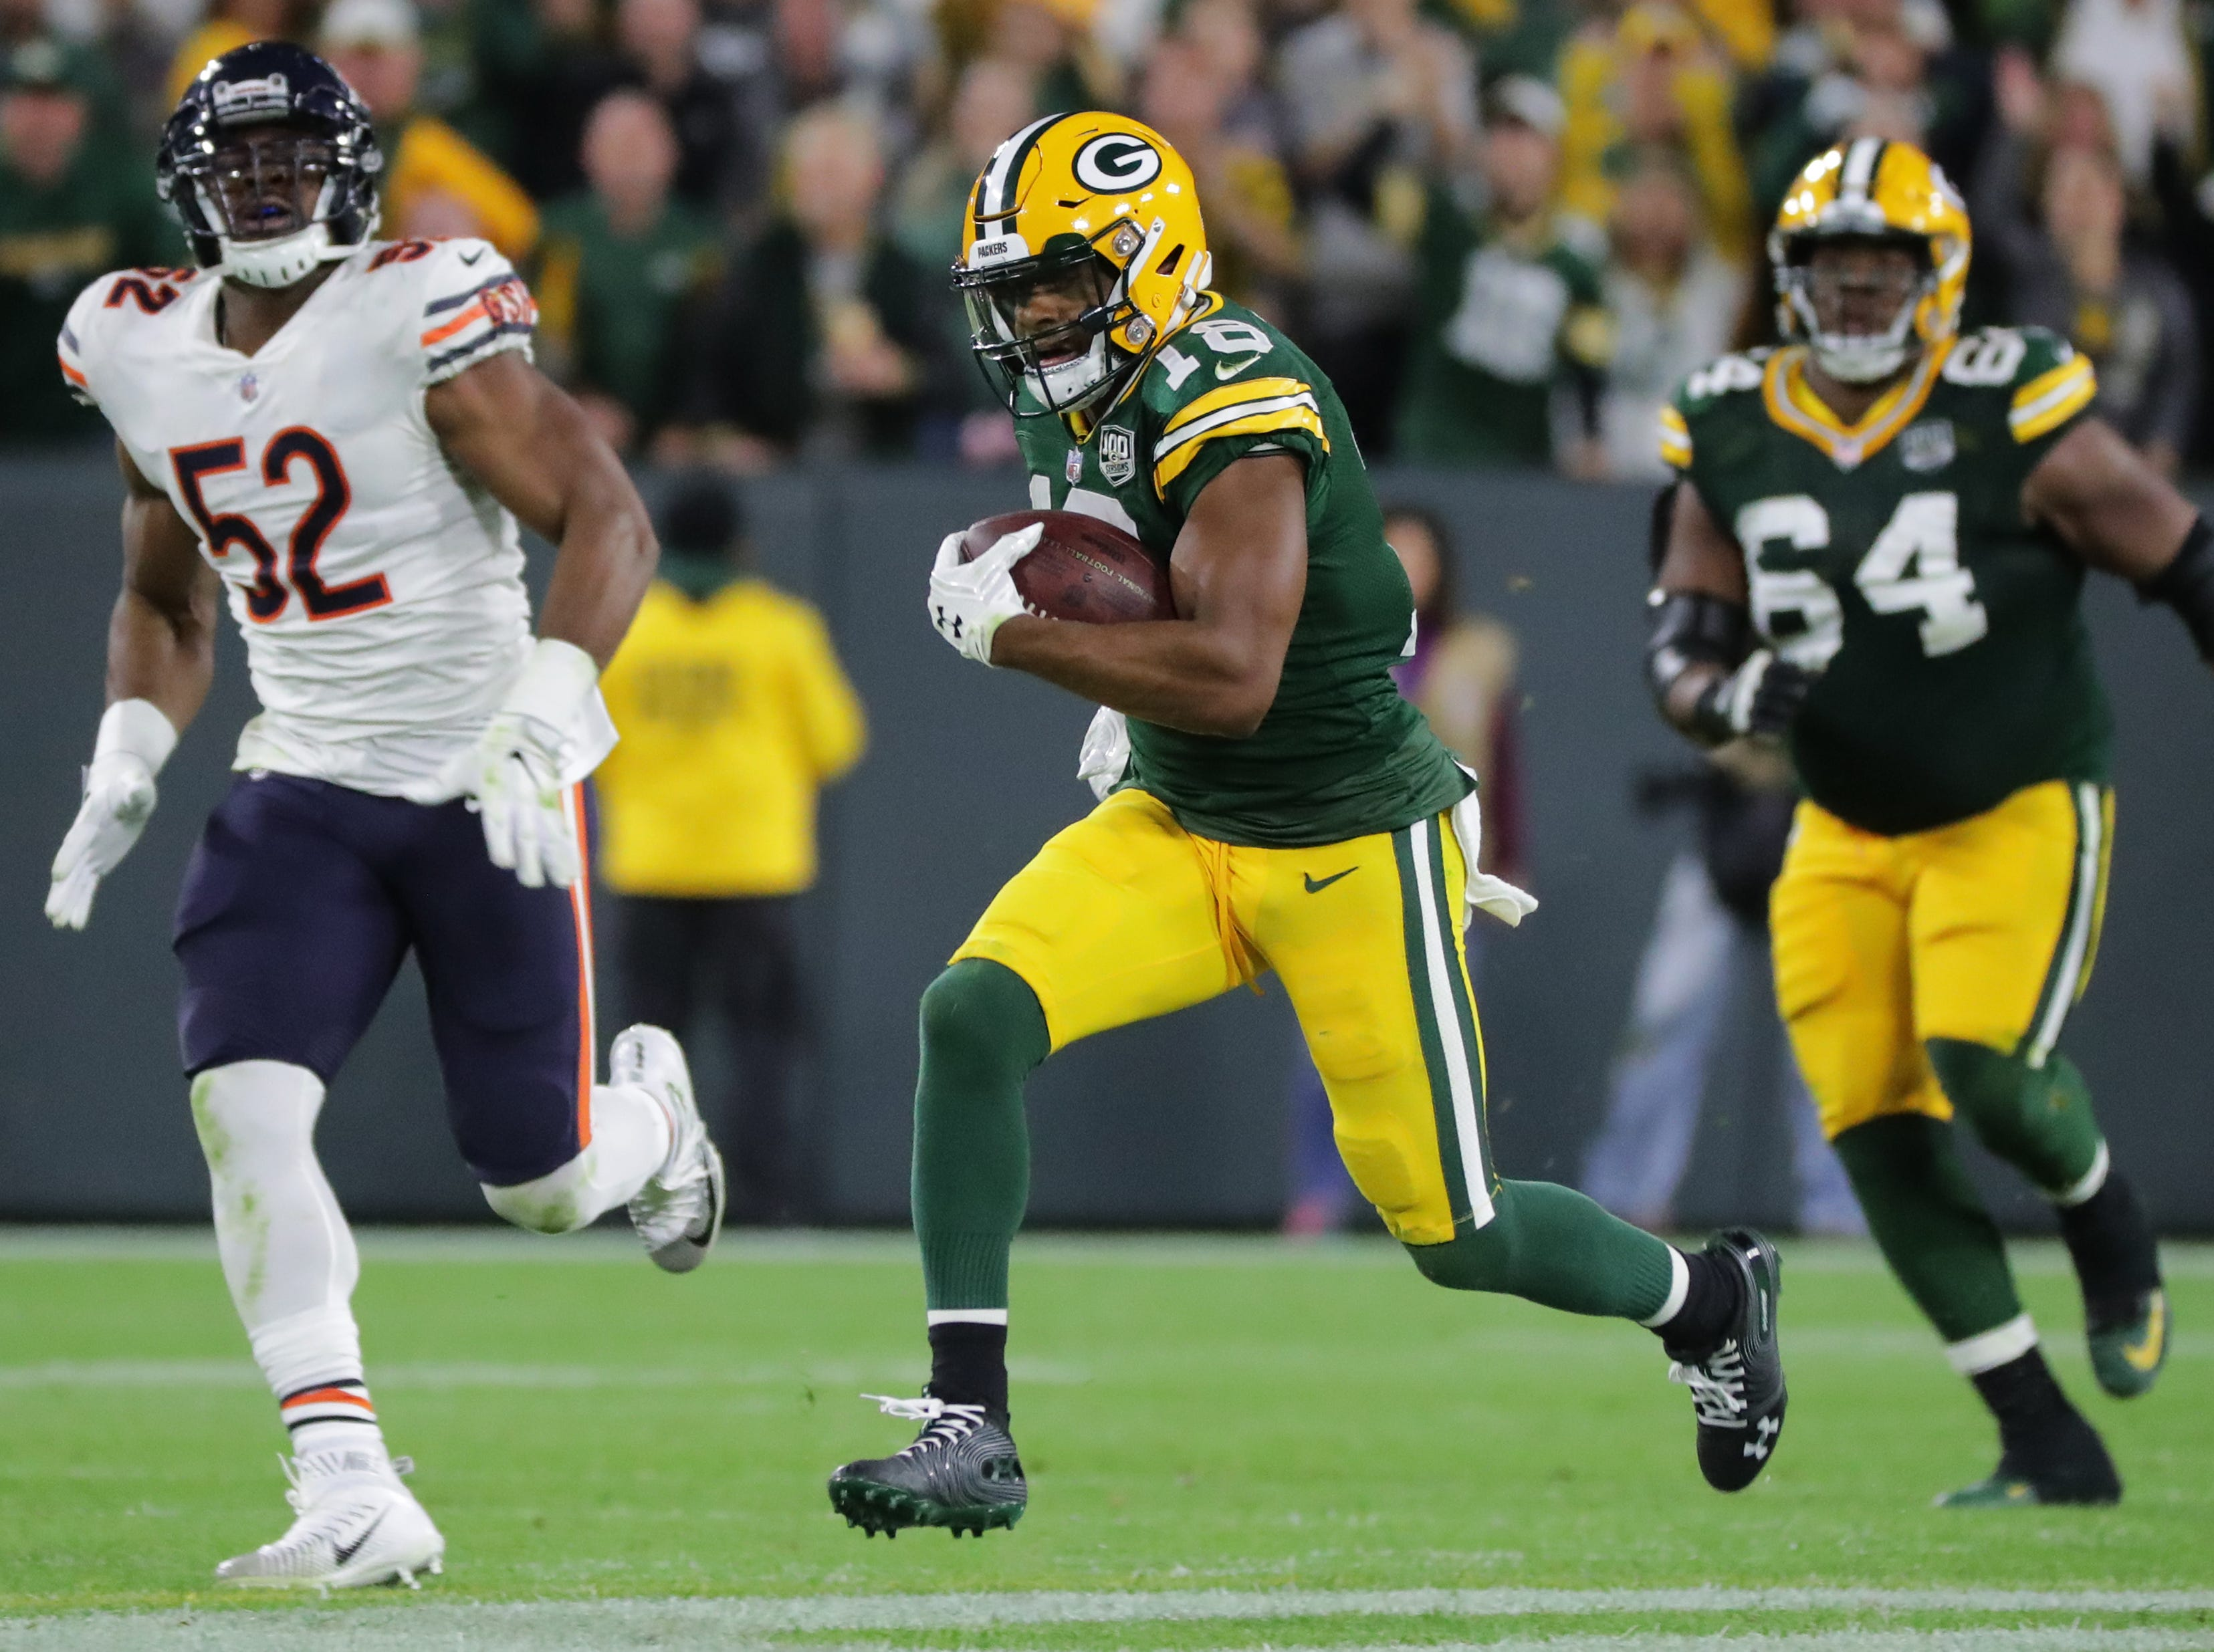 Green Bay Packers wide receiver Randall Cobb (18) scores a touchdown on a 75-yard reception during the fourth quarter of their game against the Chicago Bears Sunday, September 9, 2018 at Lambeau Field in Green Bay, Wis.